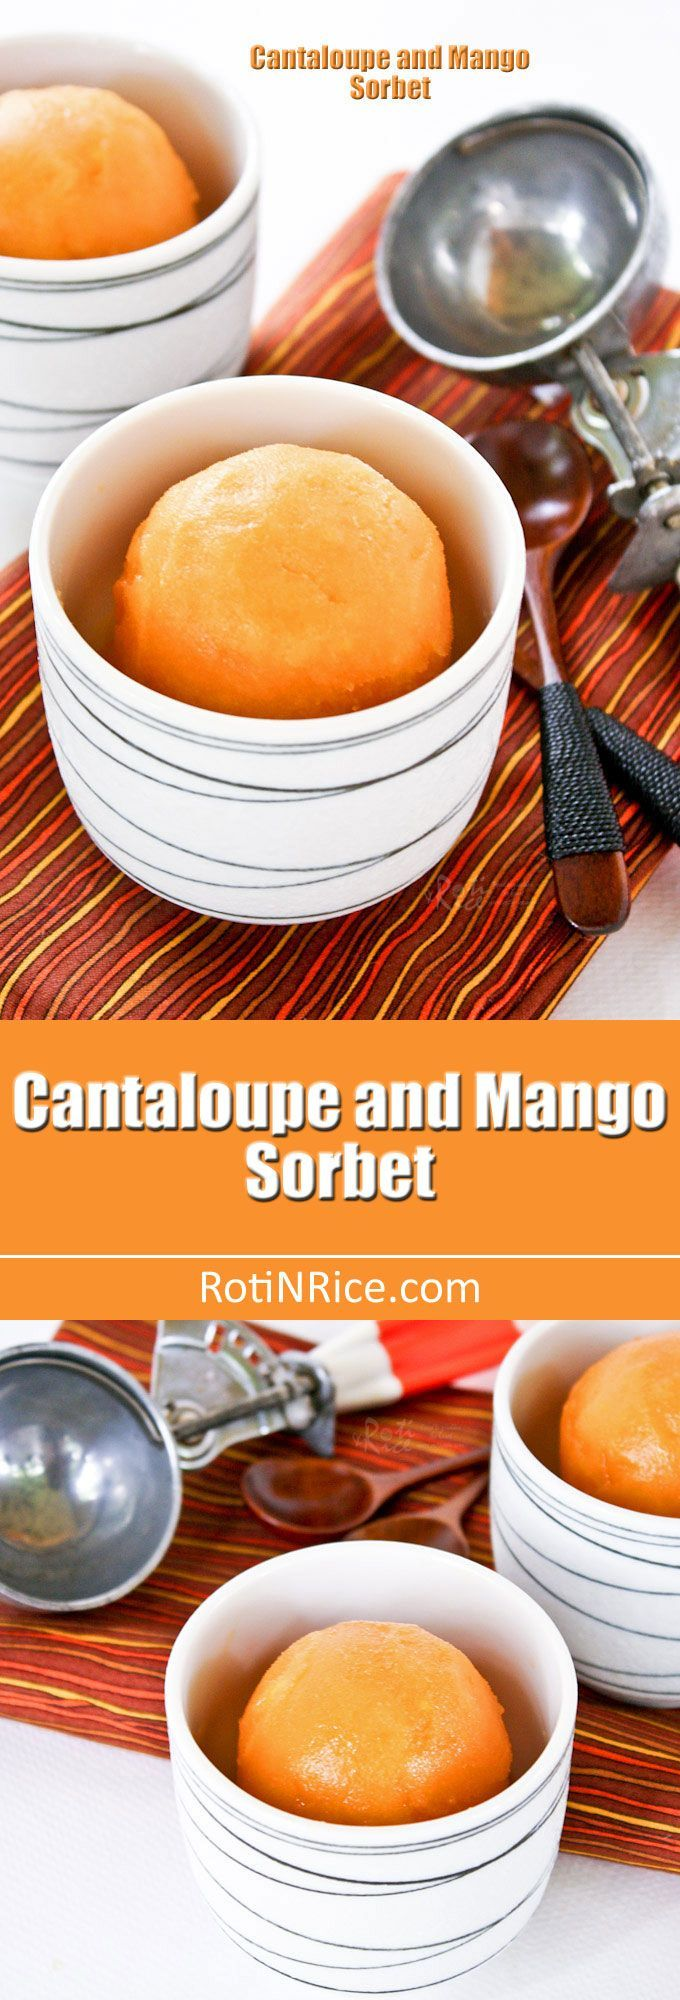 Only  four ingredients to make this juicy and refreshing Cantaloupe and Mango Sorbet. A wonderful combination and a must try for the warm summer months. | http://RotiNRice.com